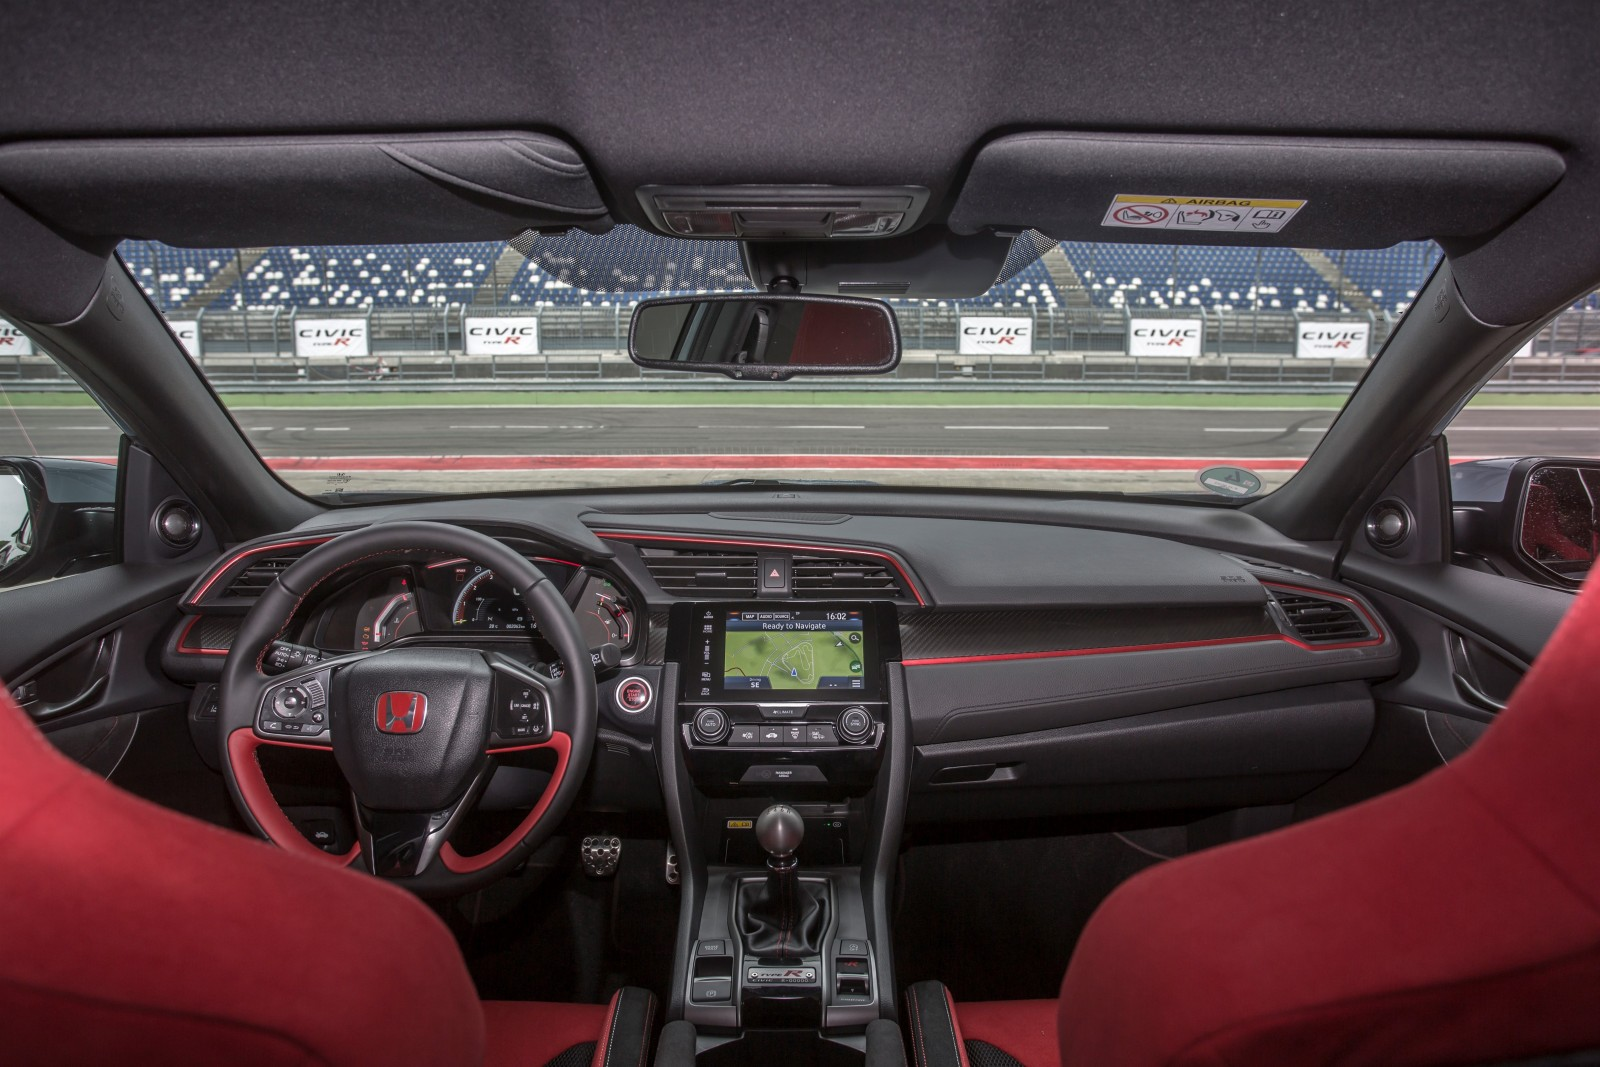 2017 Honda Civic Type R interior